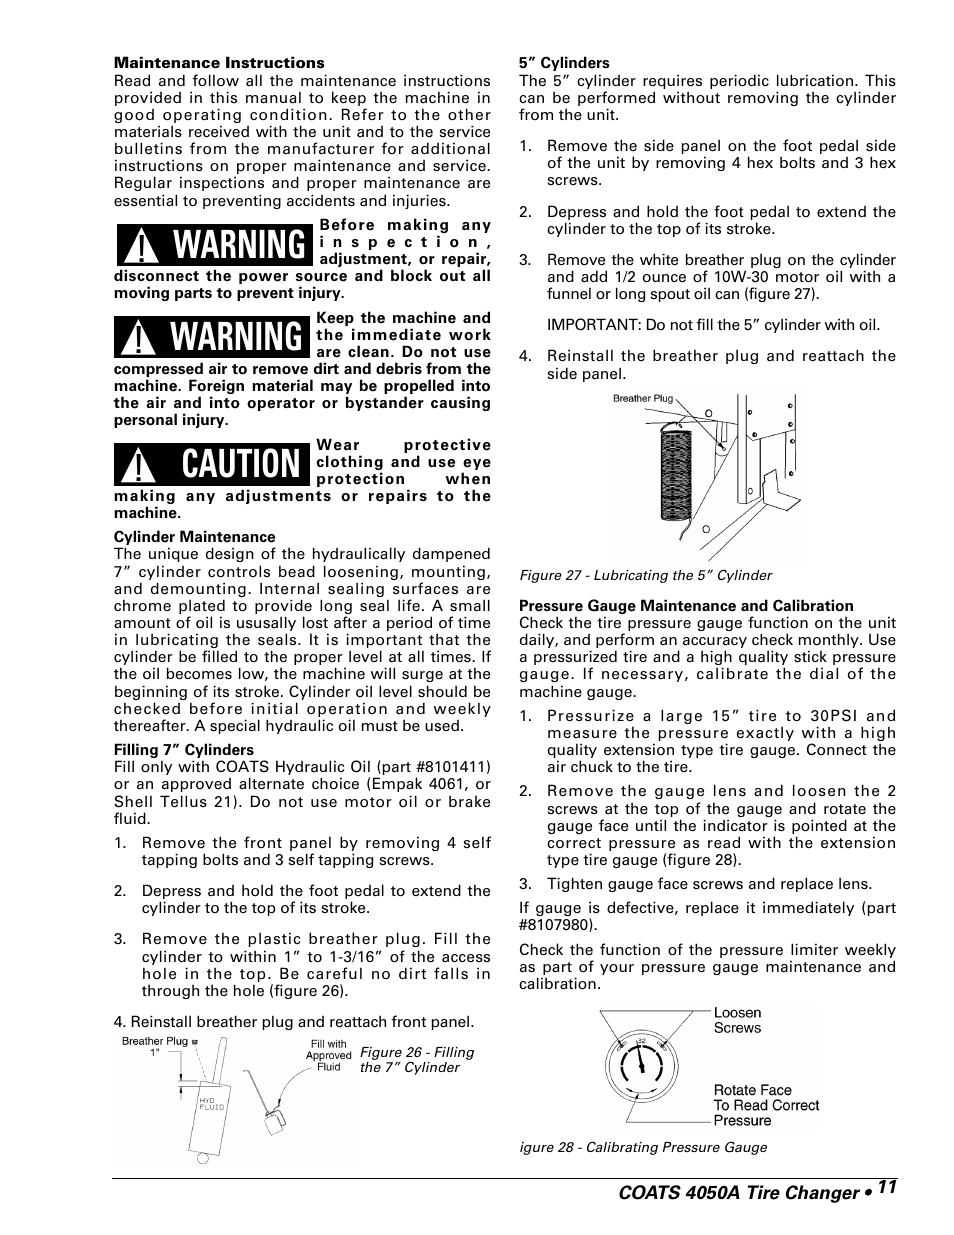 Warning, Caution | COATS 4050A Tire Changer User Manual | Page 13 / 16